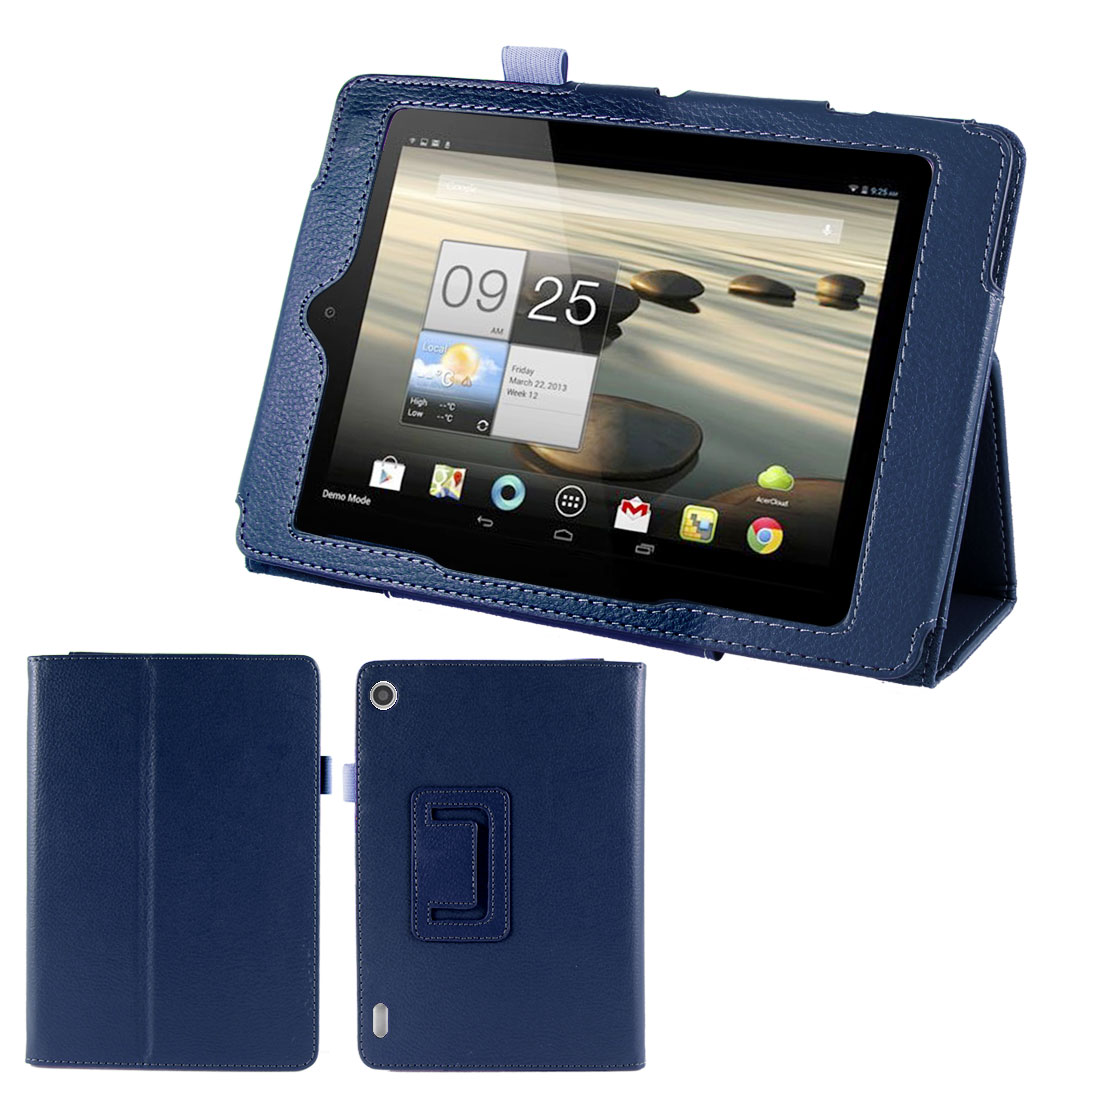 Dark Blue Faux Leather Magentic Stand Case Cover for Acer Iconia Tab A1-810 7.9""